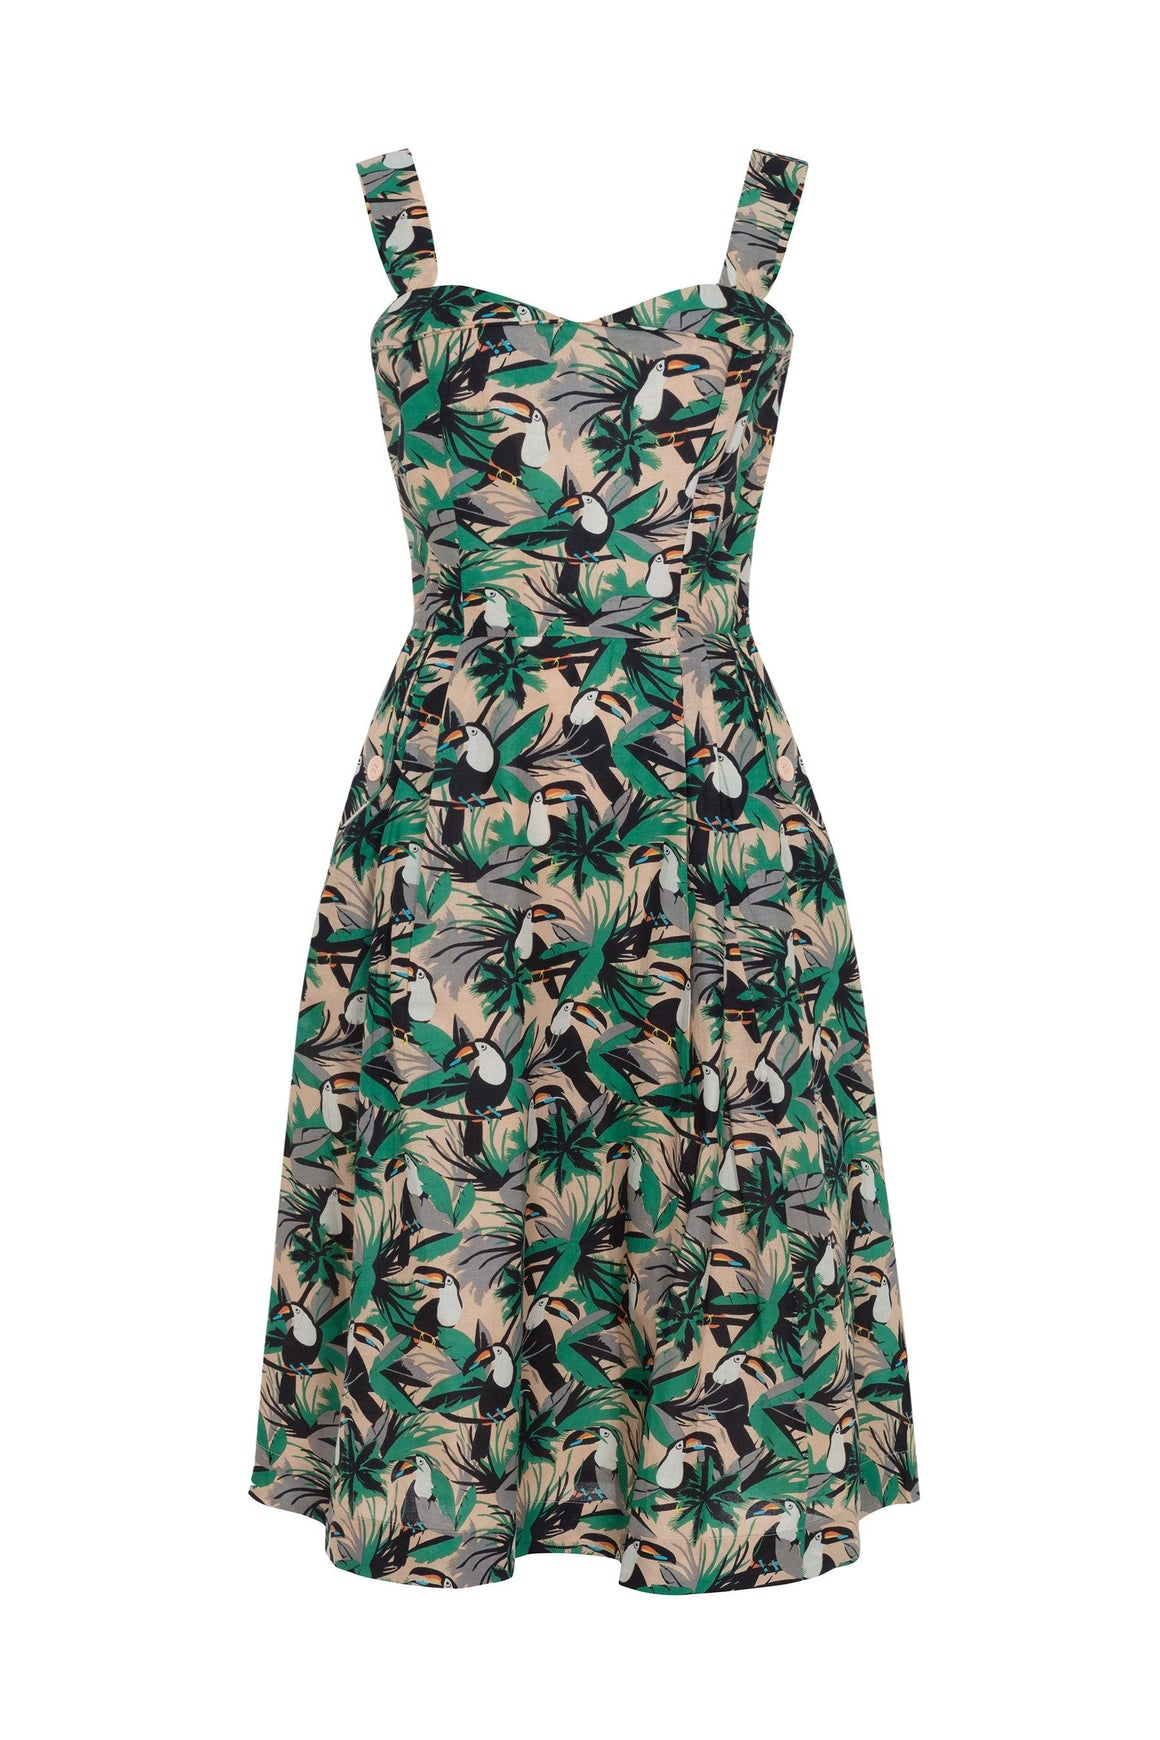 Tropical Toucans Print Pippa Dress Dress BouChic | Homeware, Fashion, Gifts, Accessories